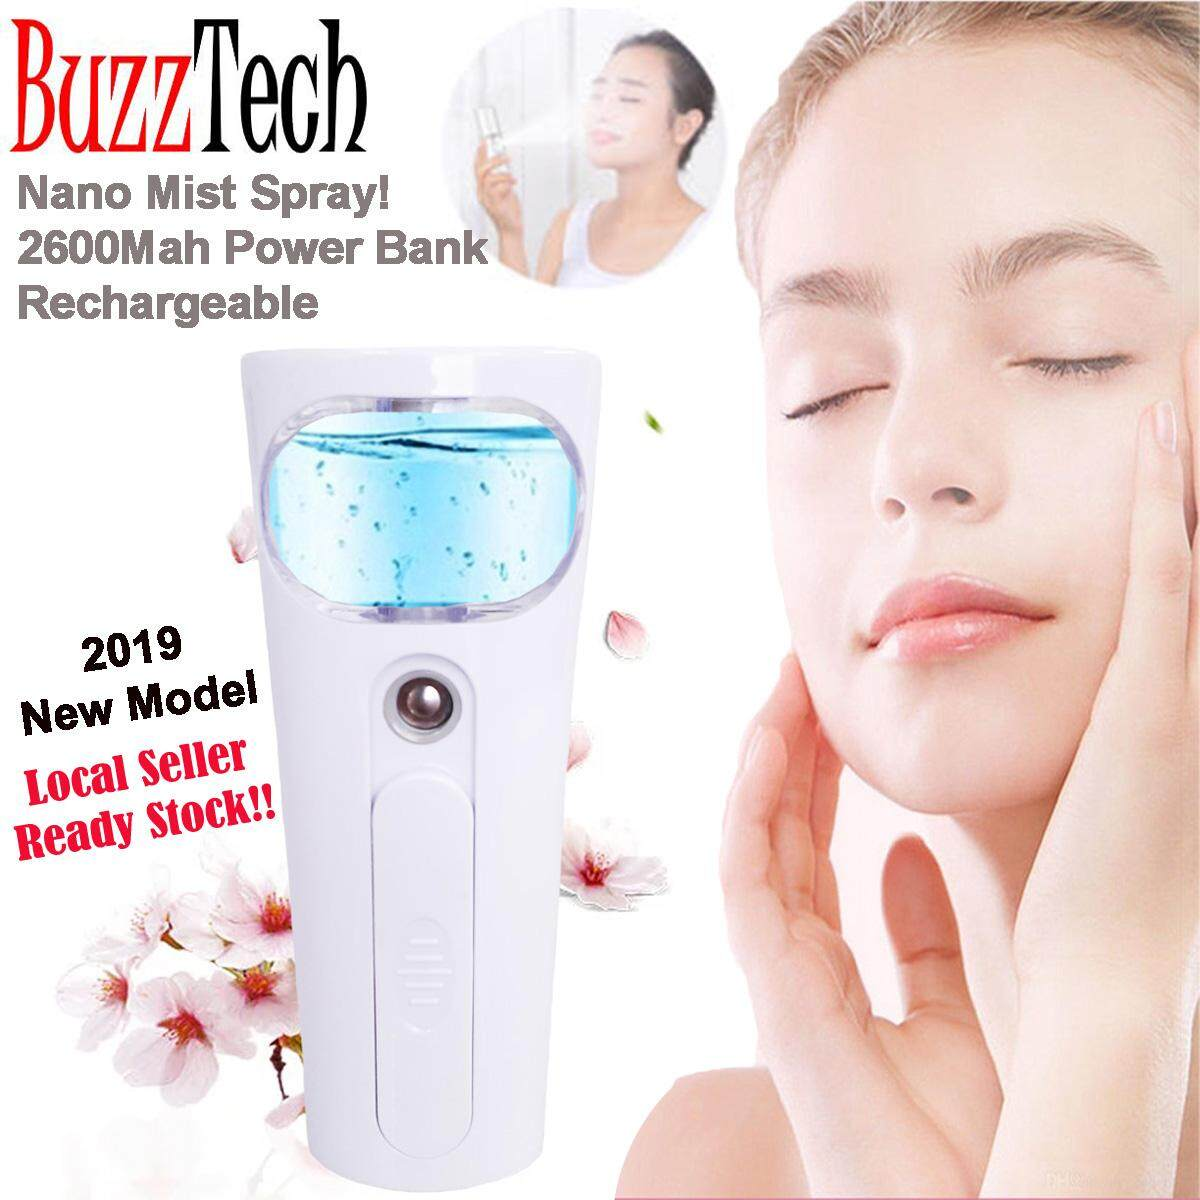 BuzzTech PowerBank Nano Water Mist Spray Facial Steamer Spray USB Rechargeable